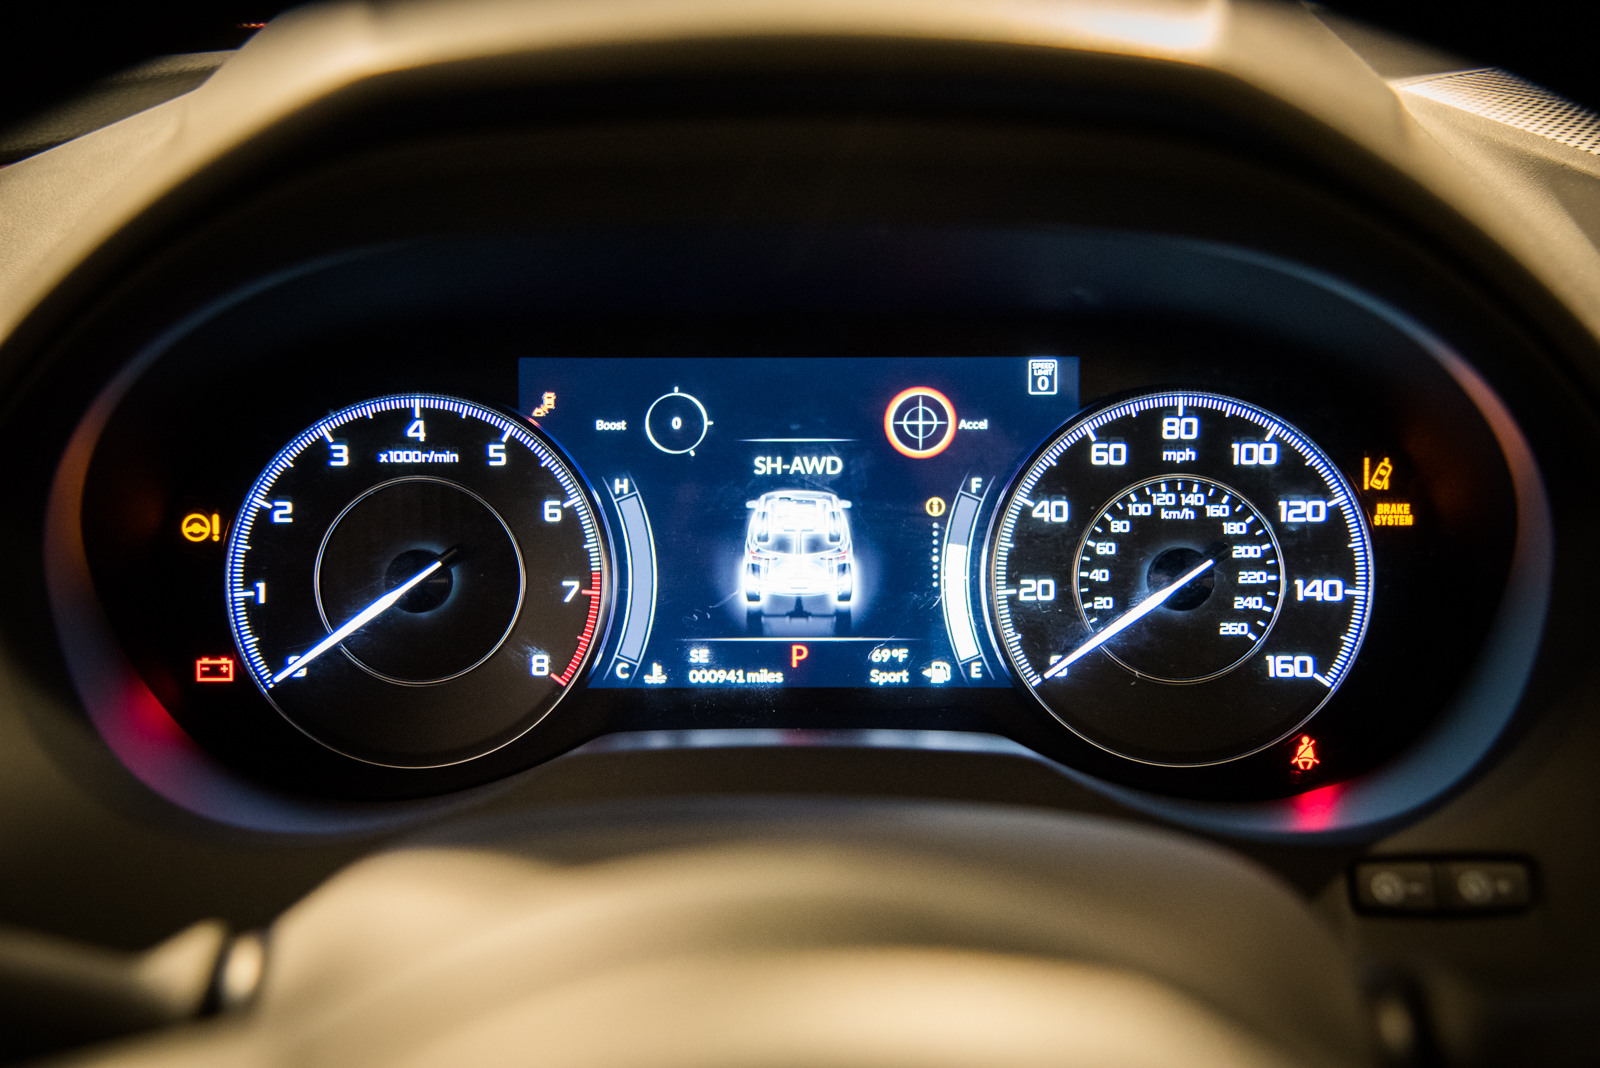 2015 Acura Tlx Tech >> Acura is back! - Page 5 - AcuraZine - Acura Enthusiast Community